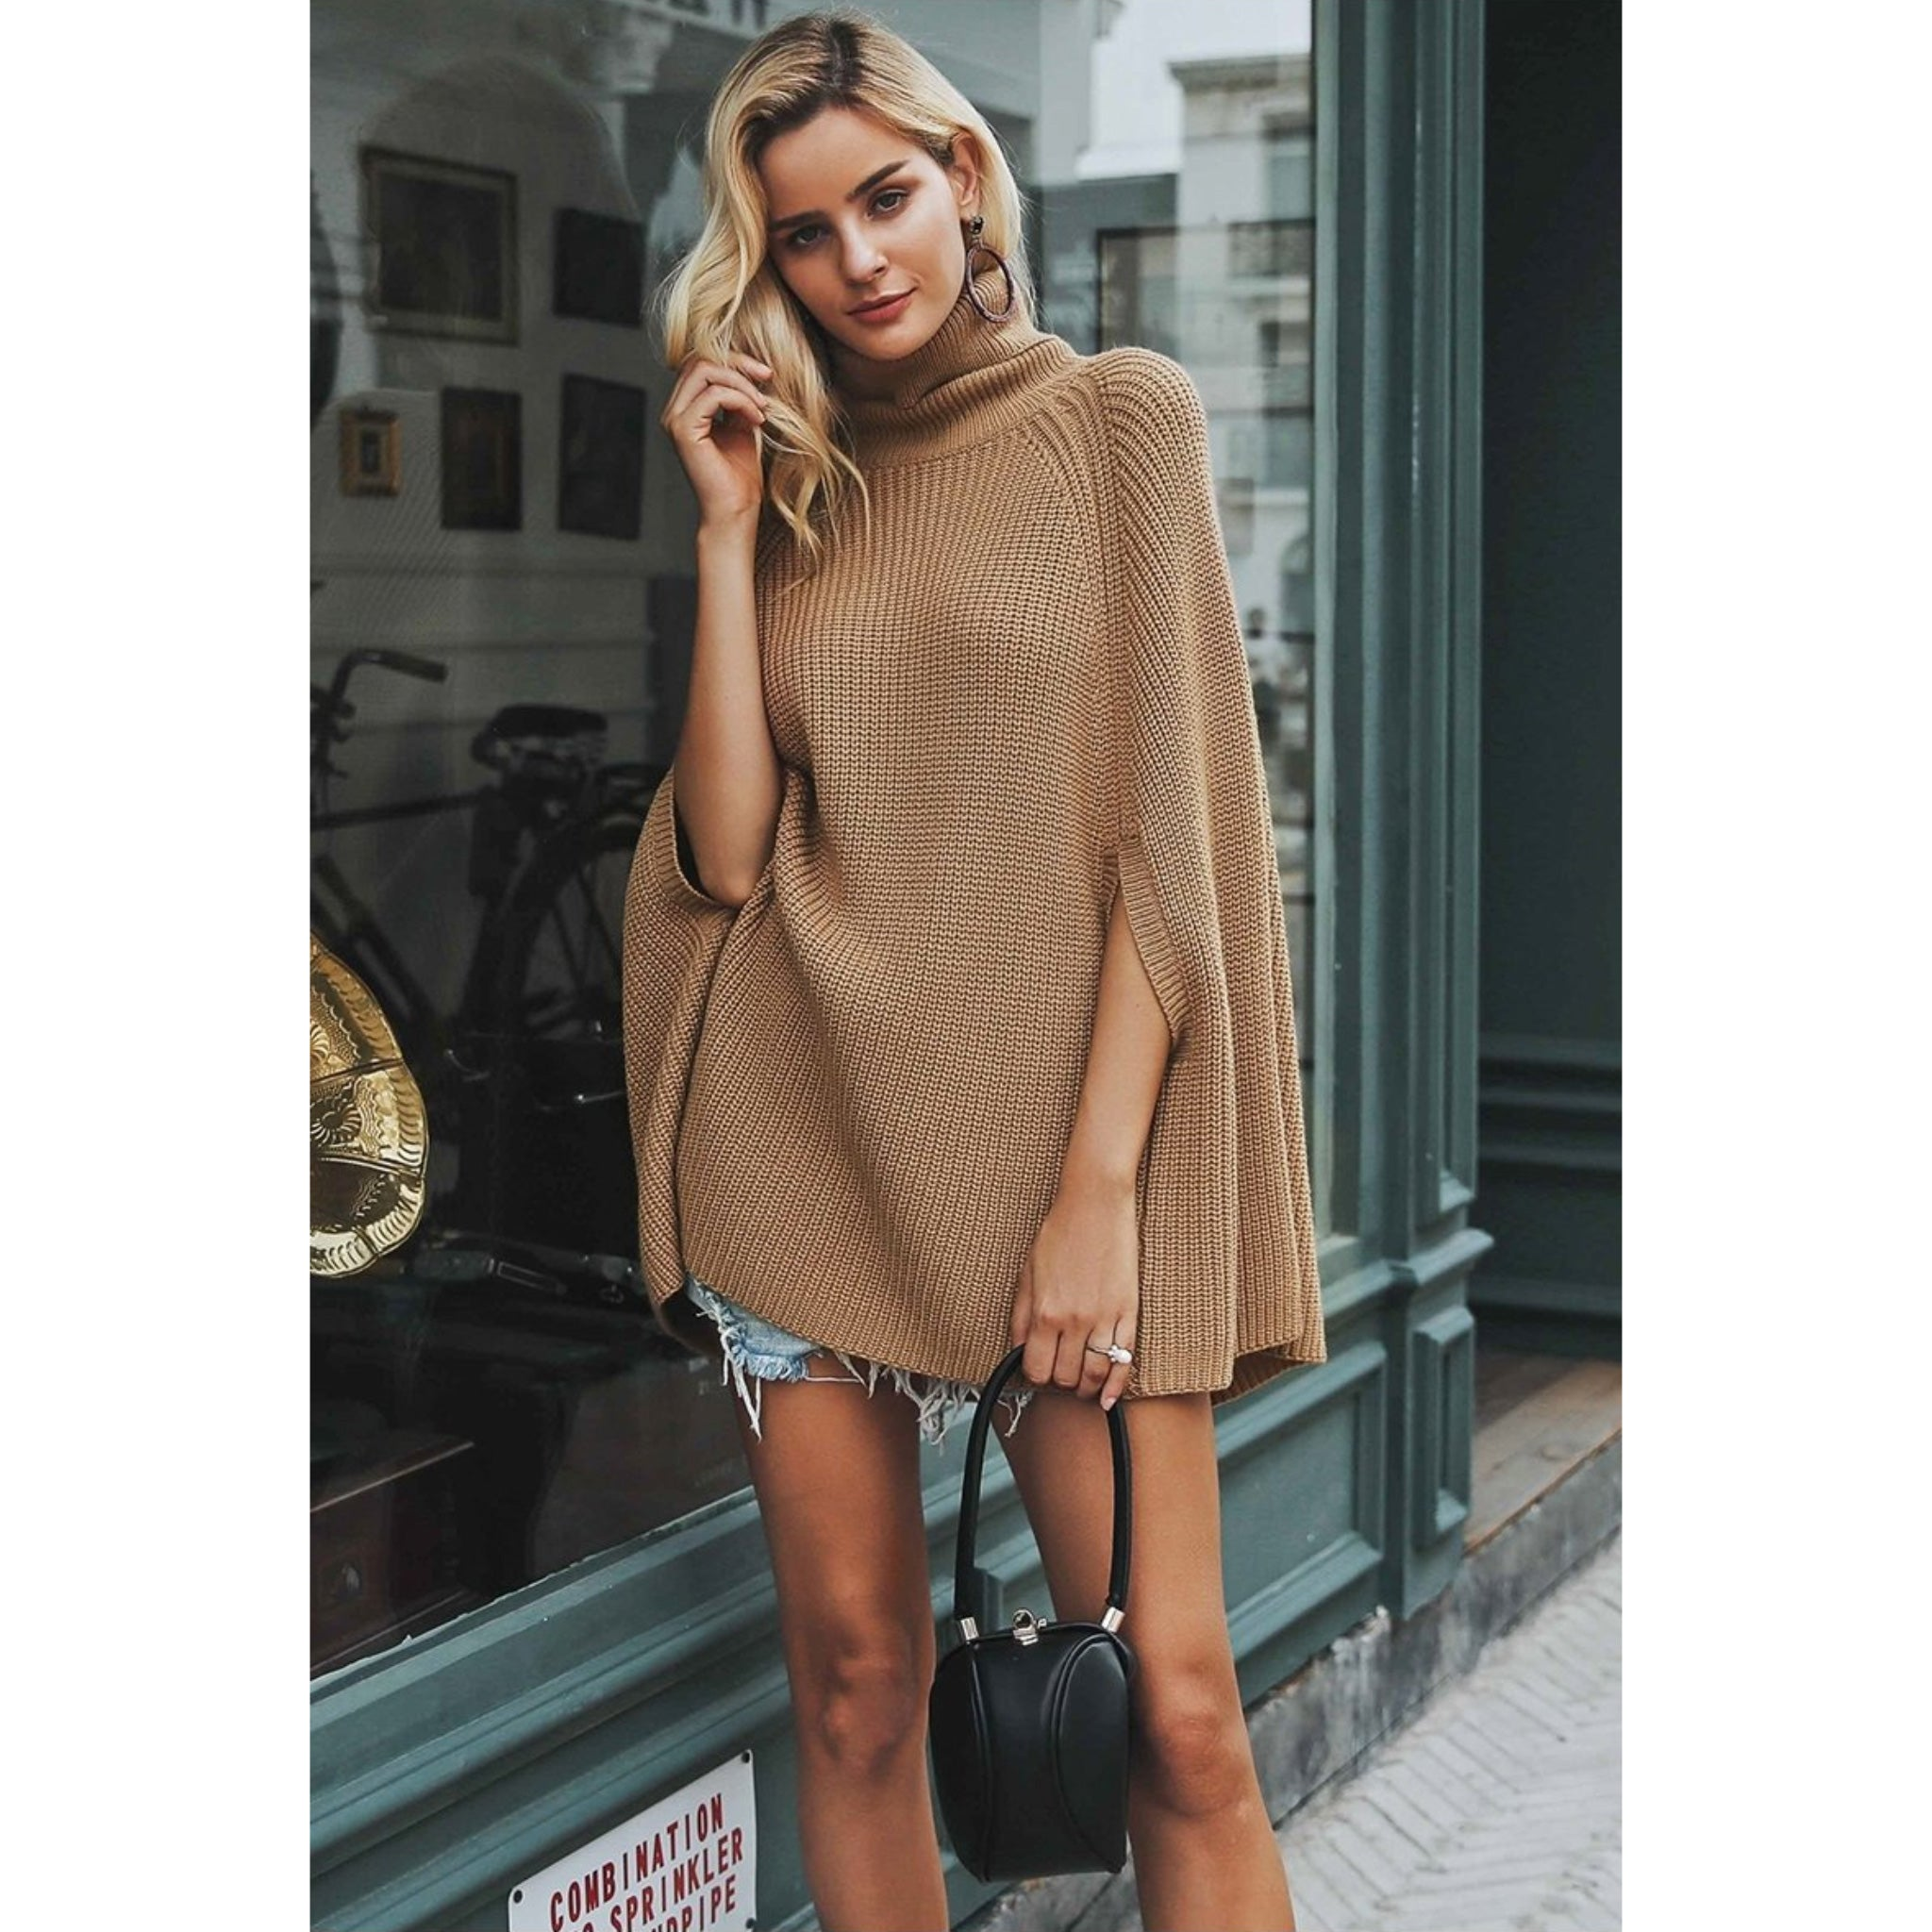 Batwing sleeve Poncho like sweater Womens camel turtleneck